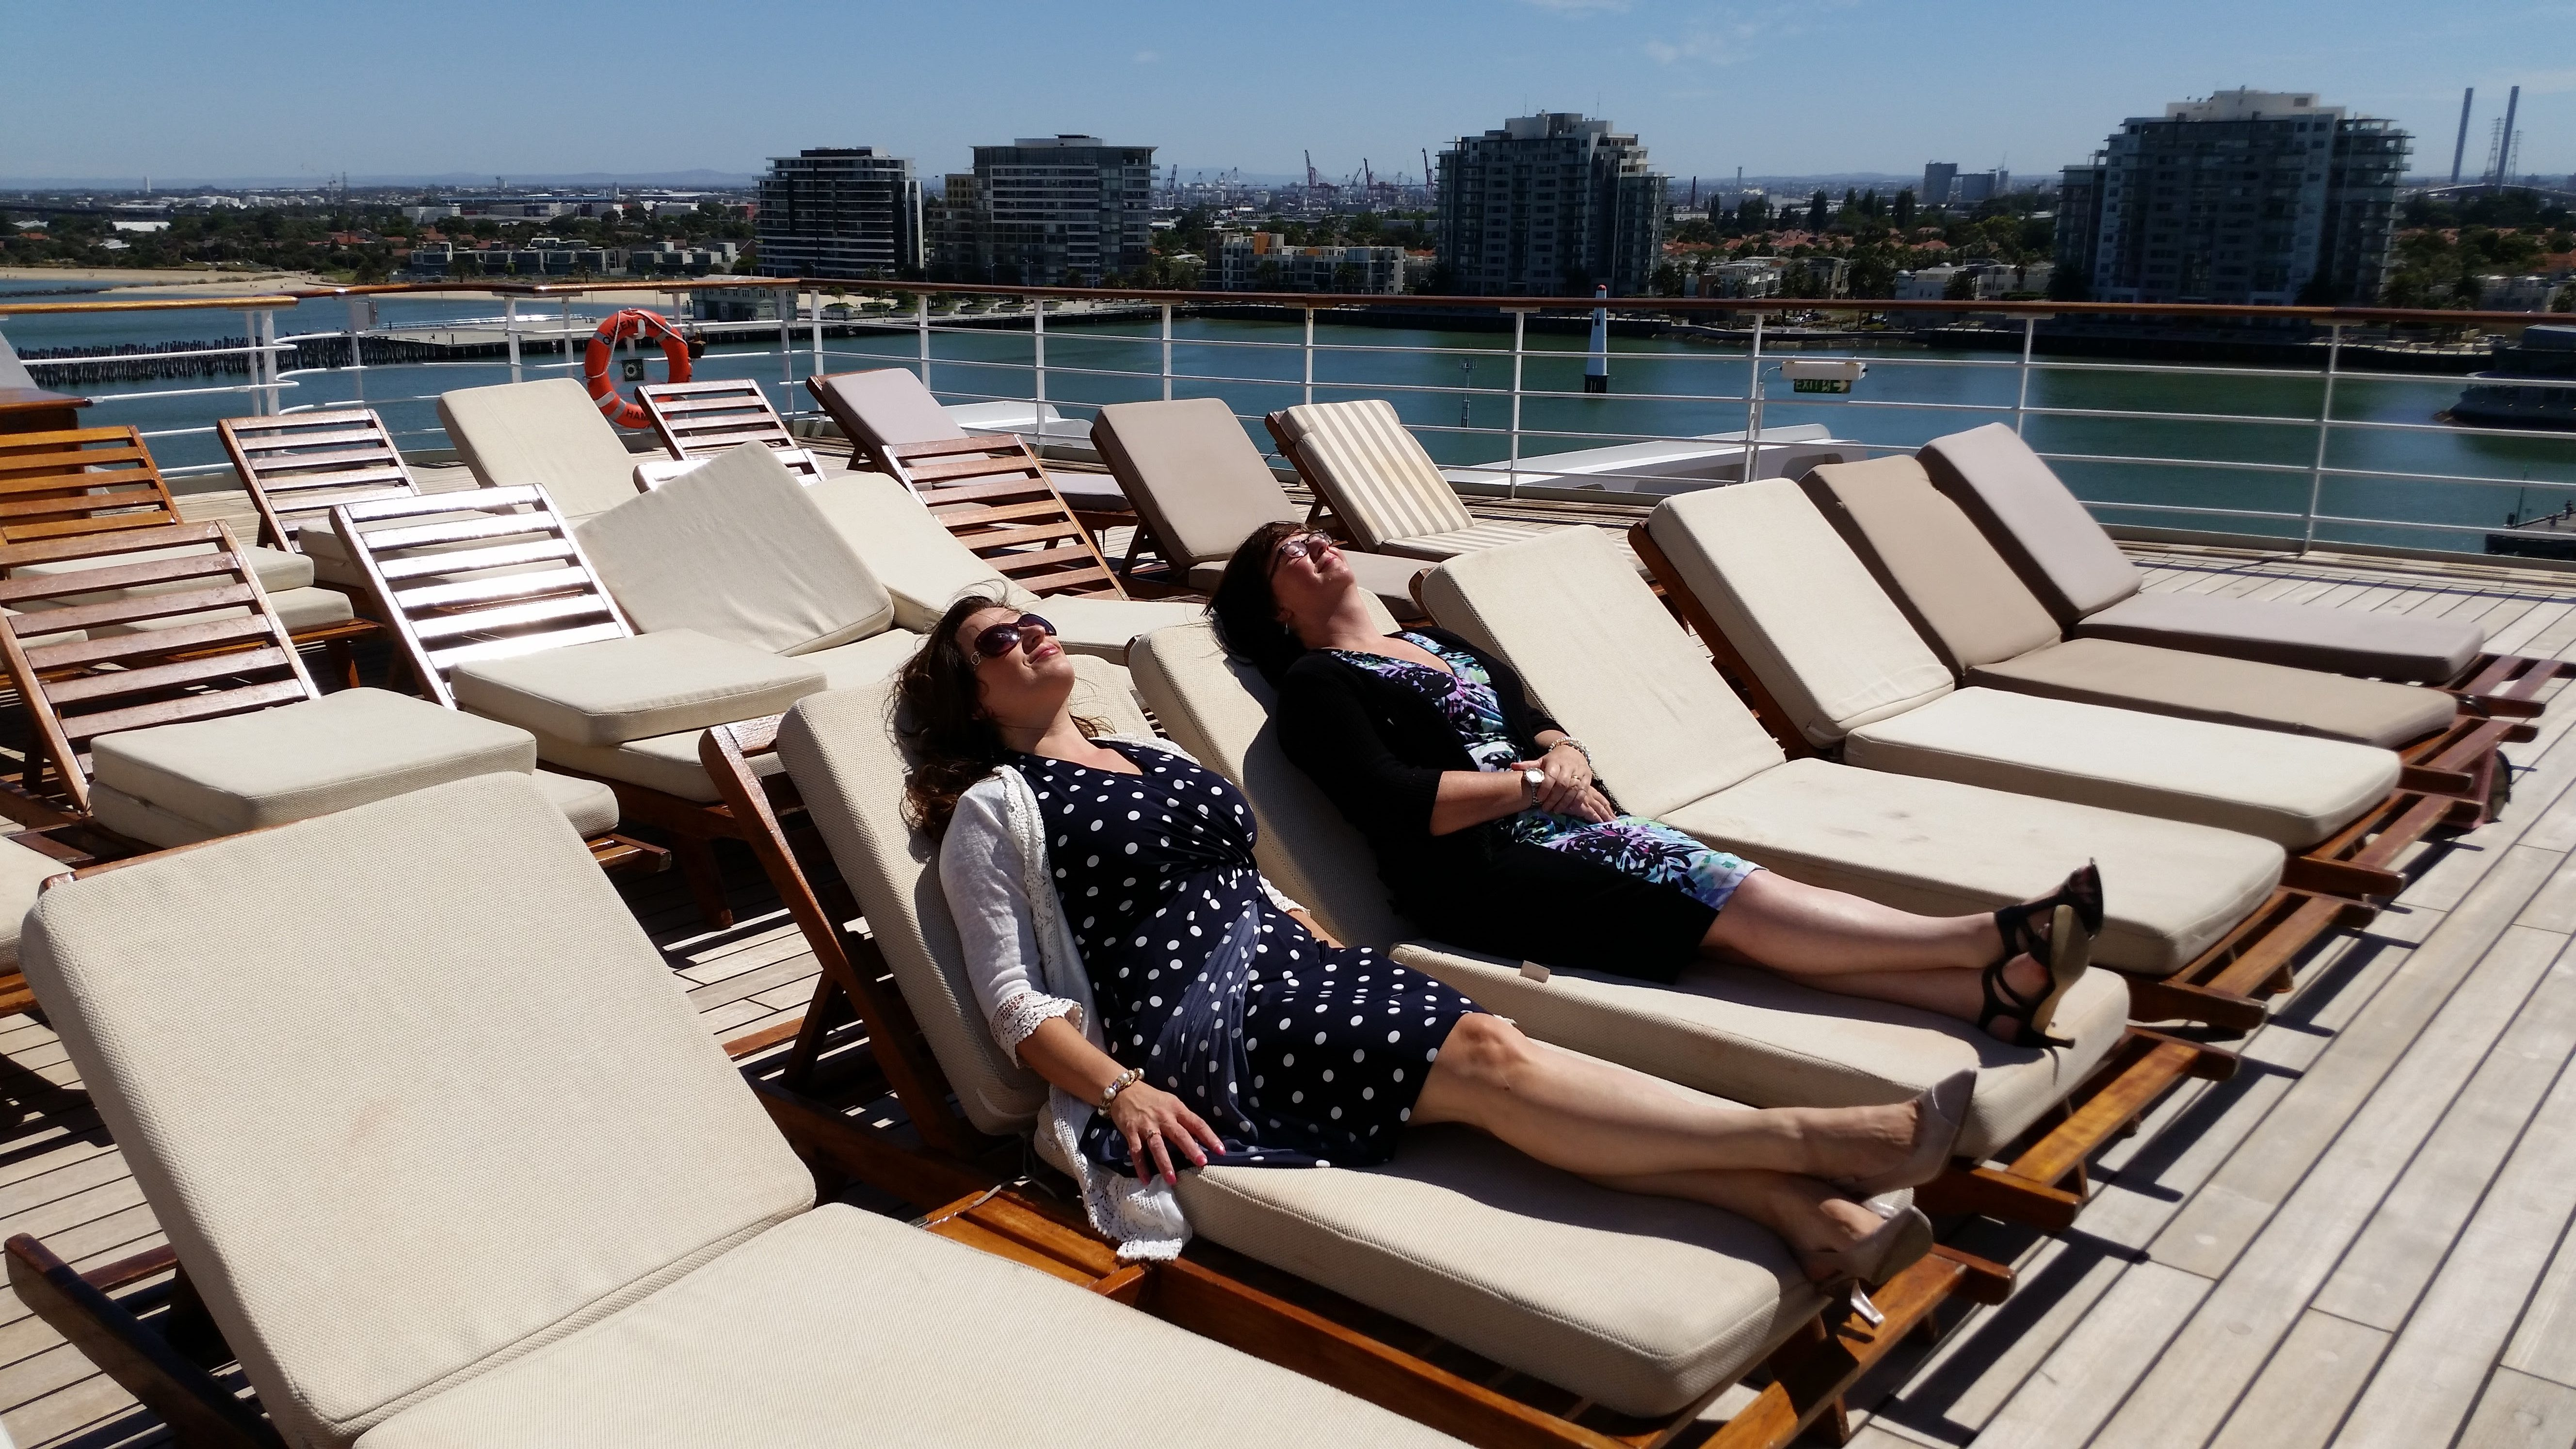 Queen Mary 2 - Author Visit - Dorothy Adamek on chaise sofa sleeper, chaise furniture, chaise recliner chair,